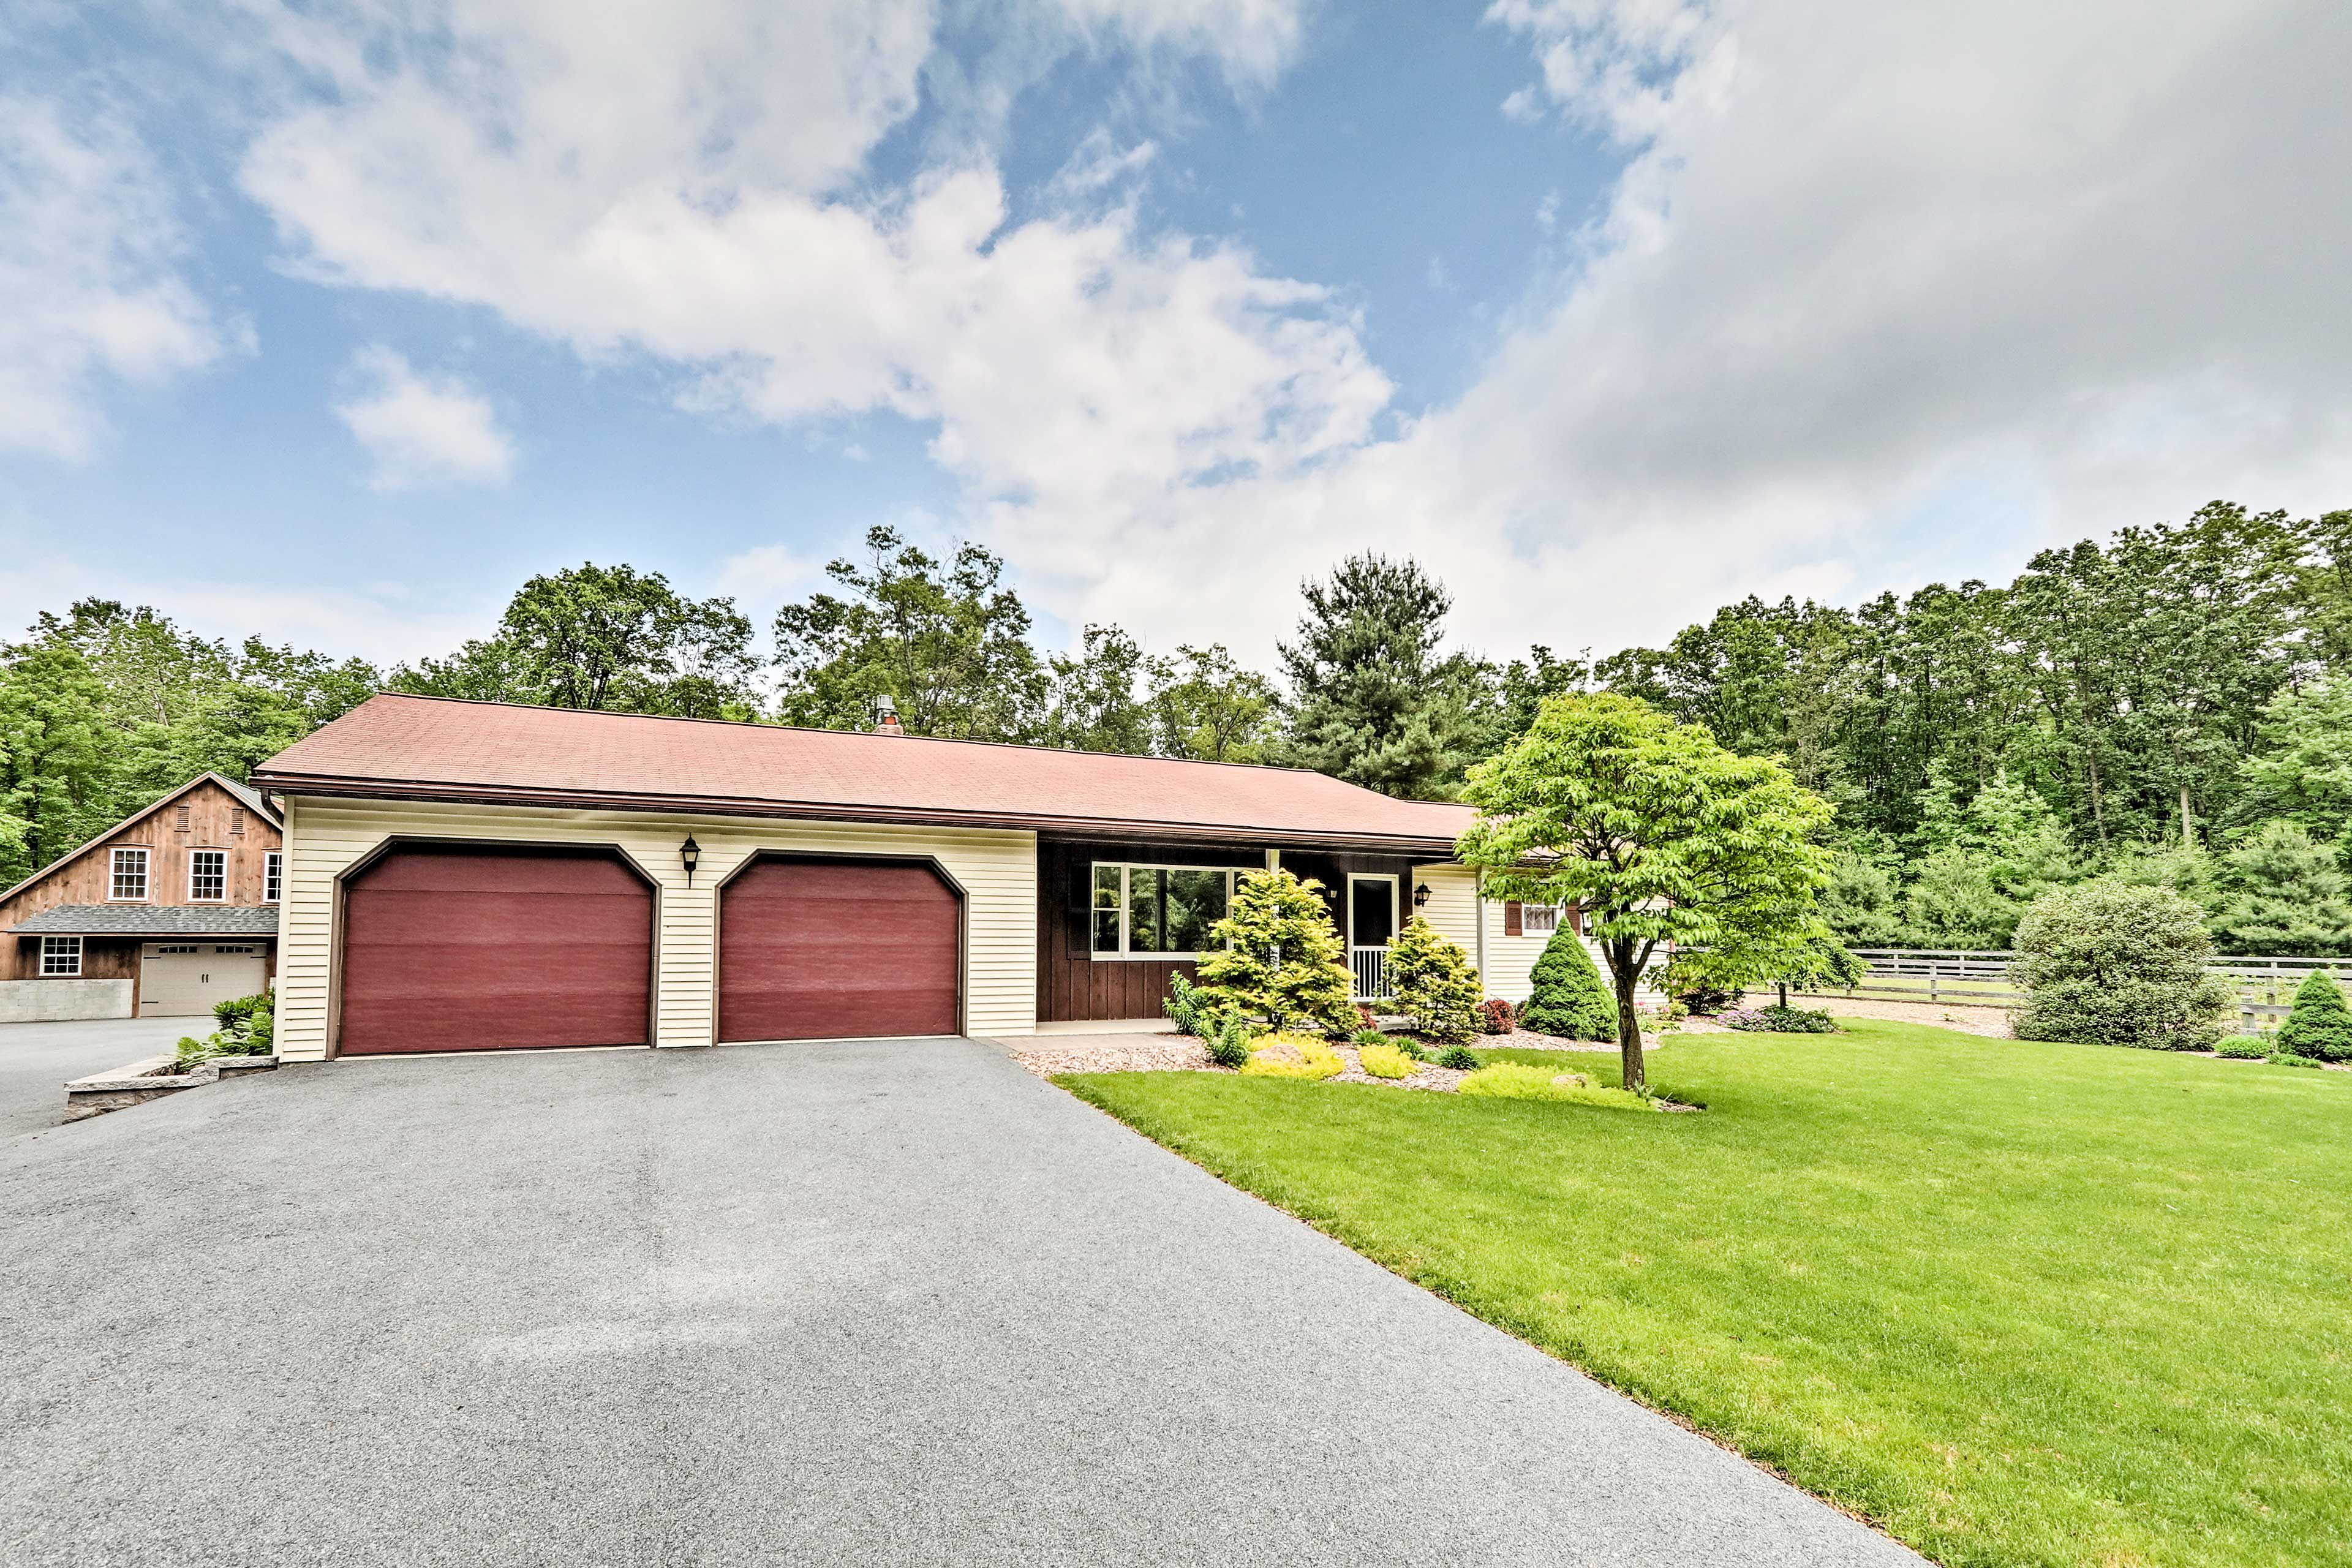 Escape to Dutch Country with a stay at this 4-bed, 2.5-bath home!